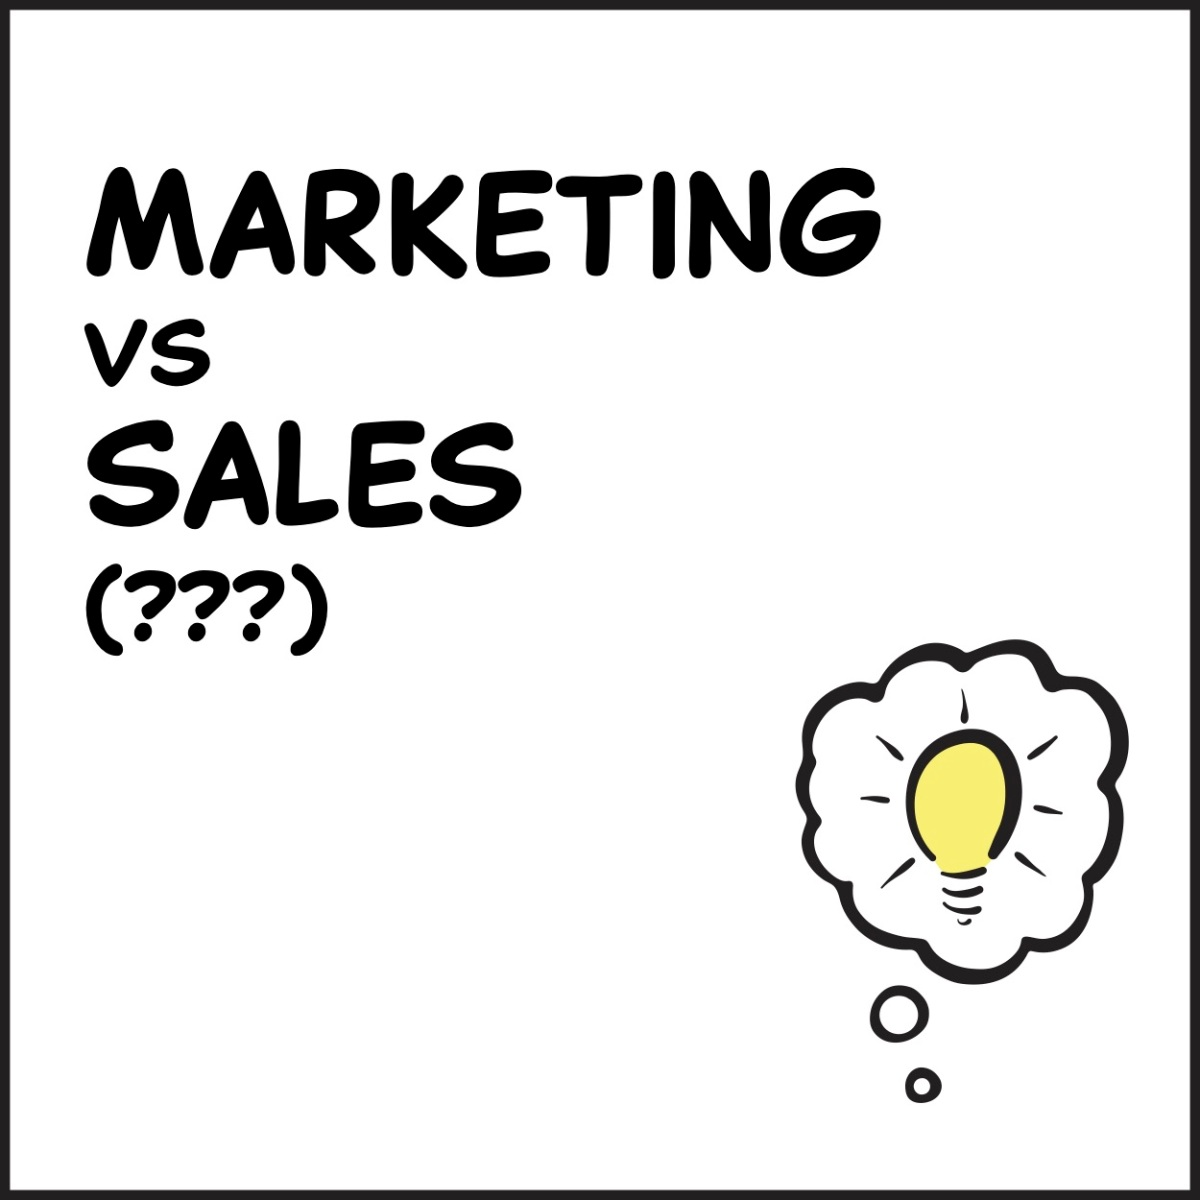 Marketing Vs Sales (???)